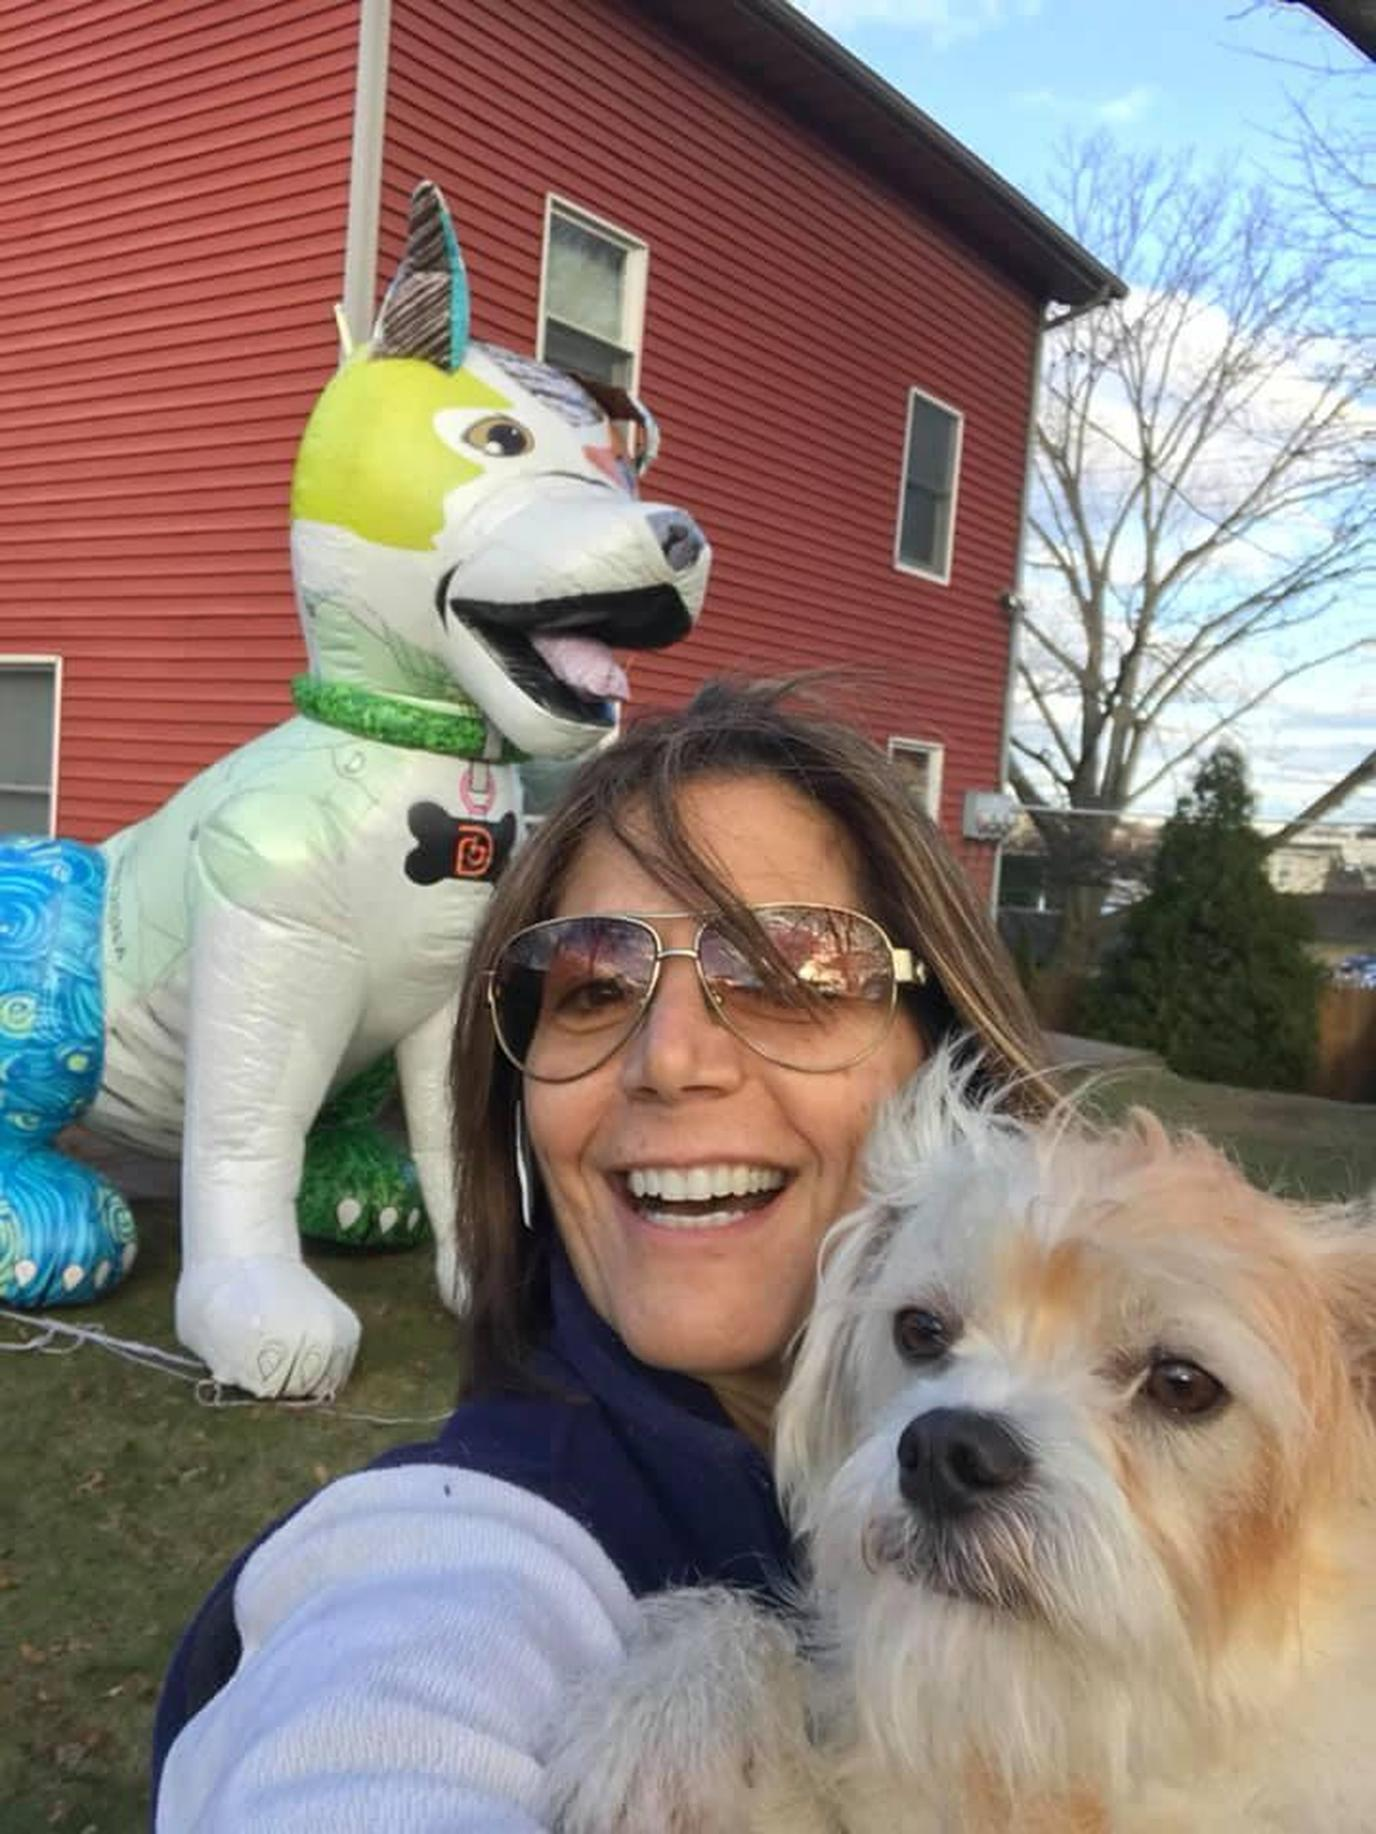 A Woman Takes a Selfie With Her Dog at a Pet-Friendly Christmas Race in New York.